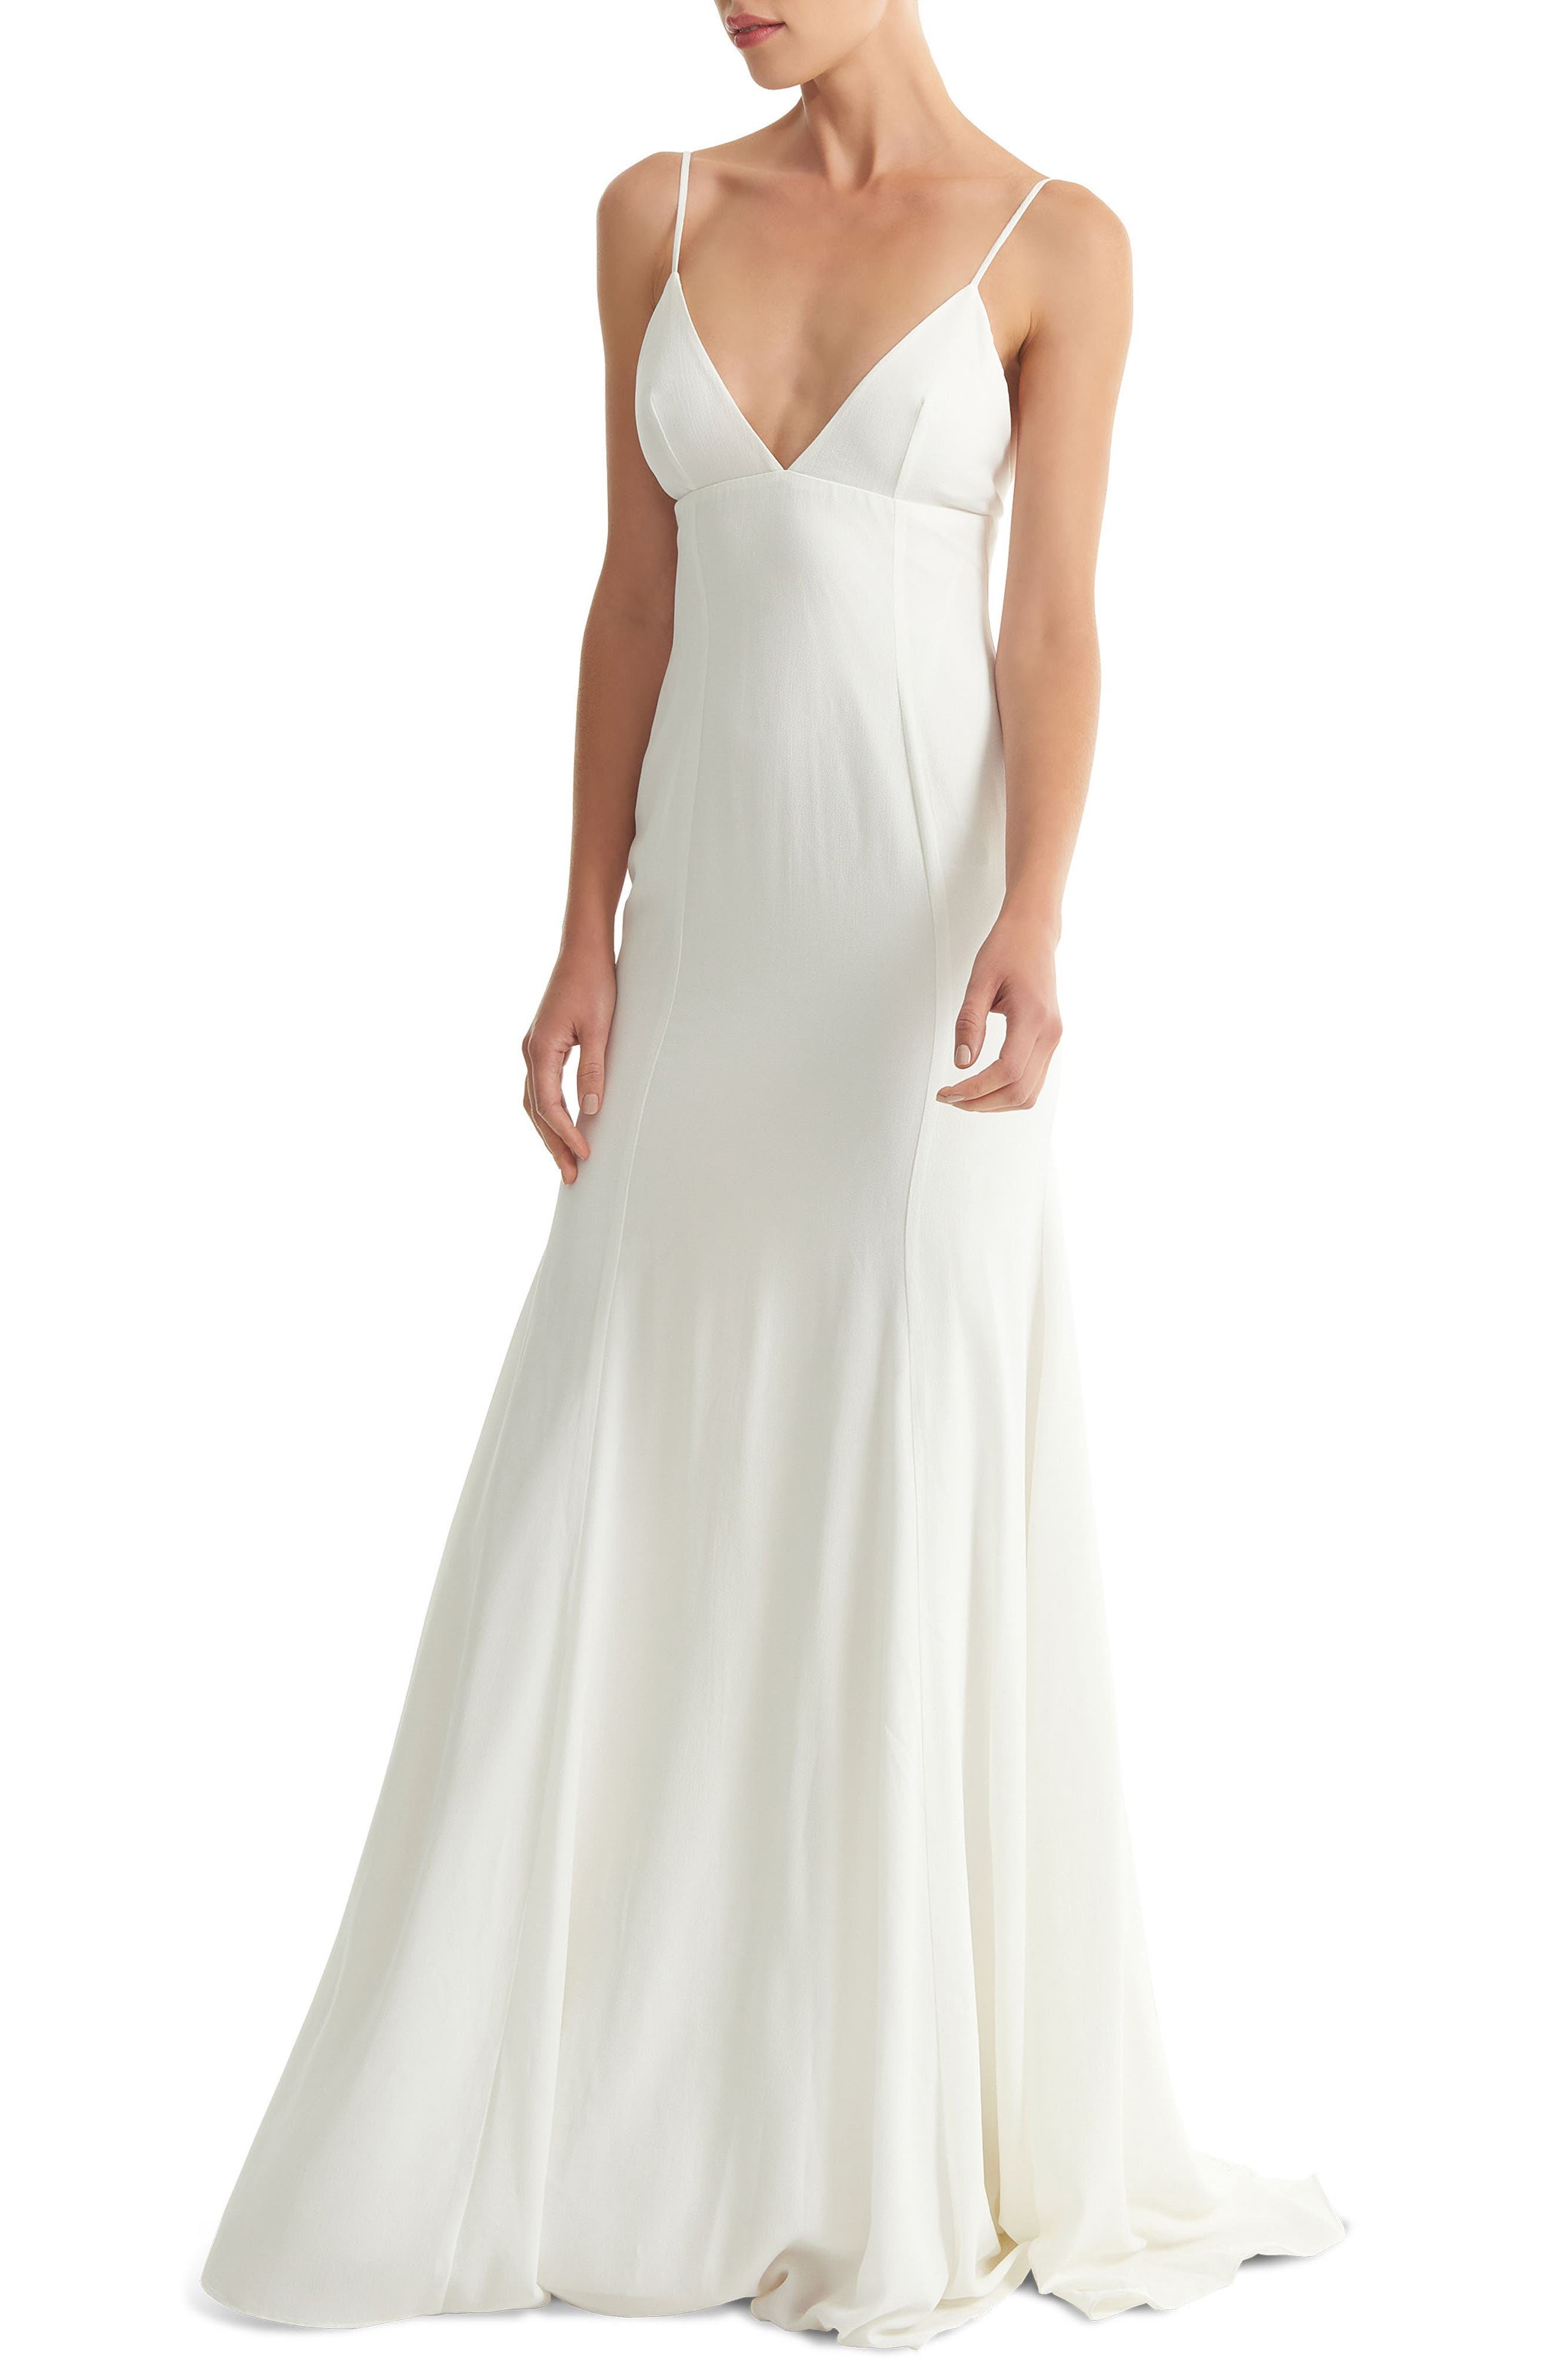 JOANNA AUGUST, Crosby Crepe Mermaid Gown, Main thumbnail 1, color, WHITE